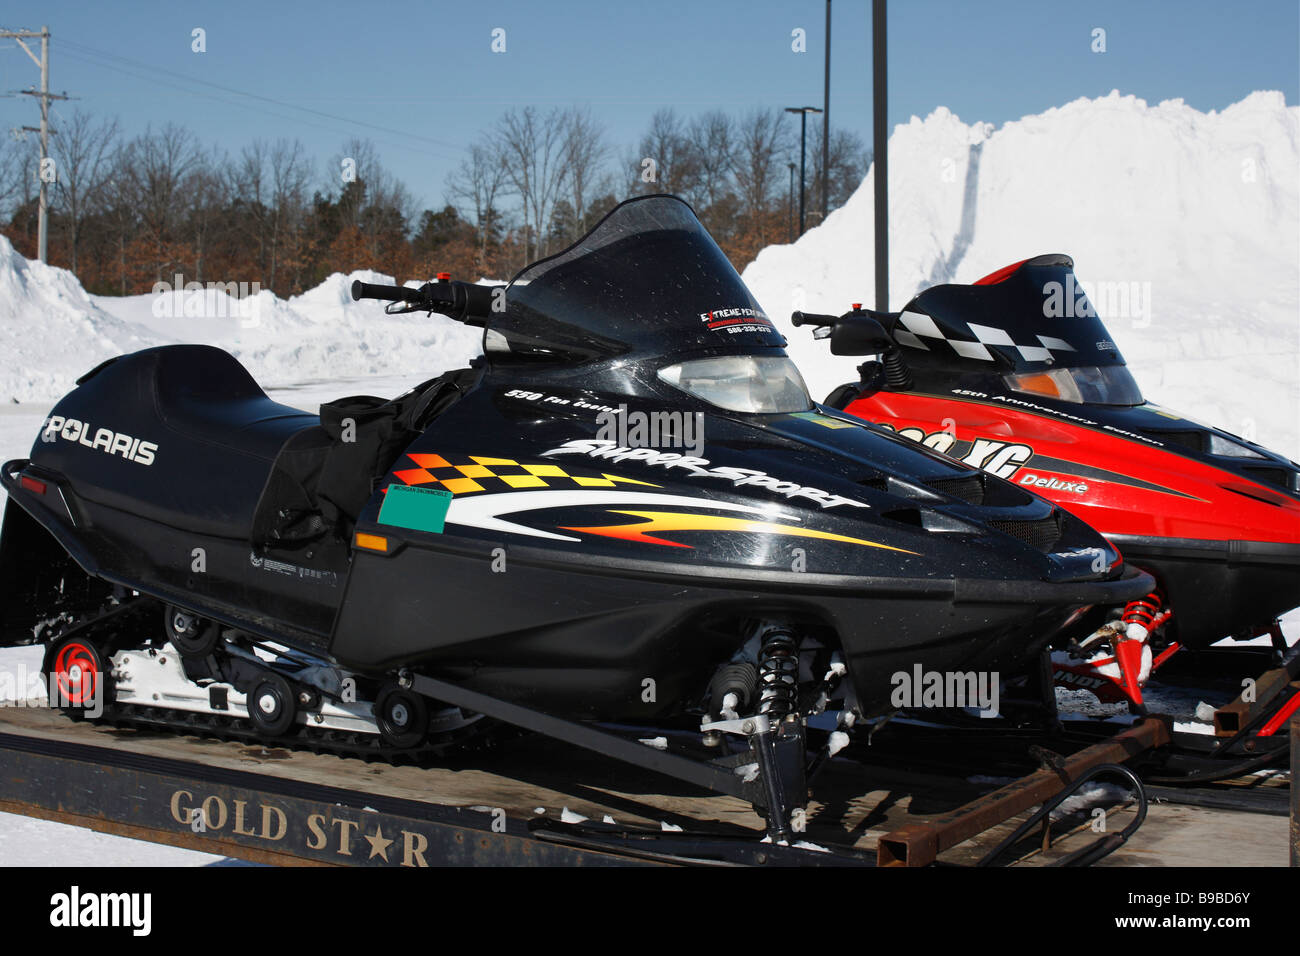 Snowmobile parked on the street in USA - Stock Image